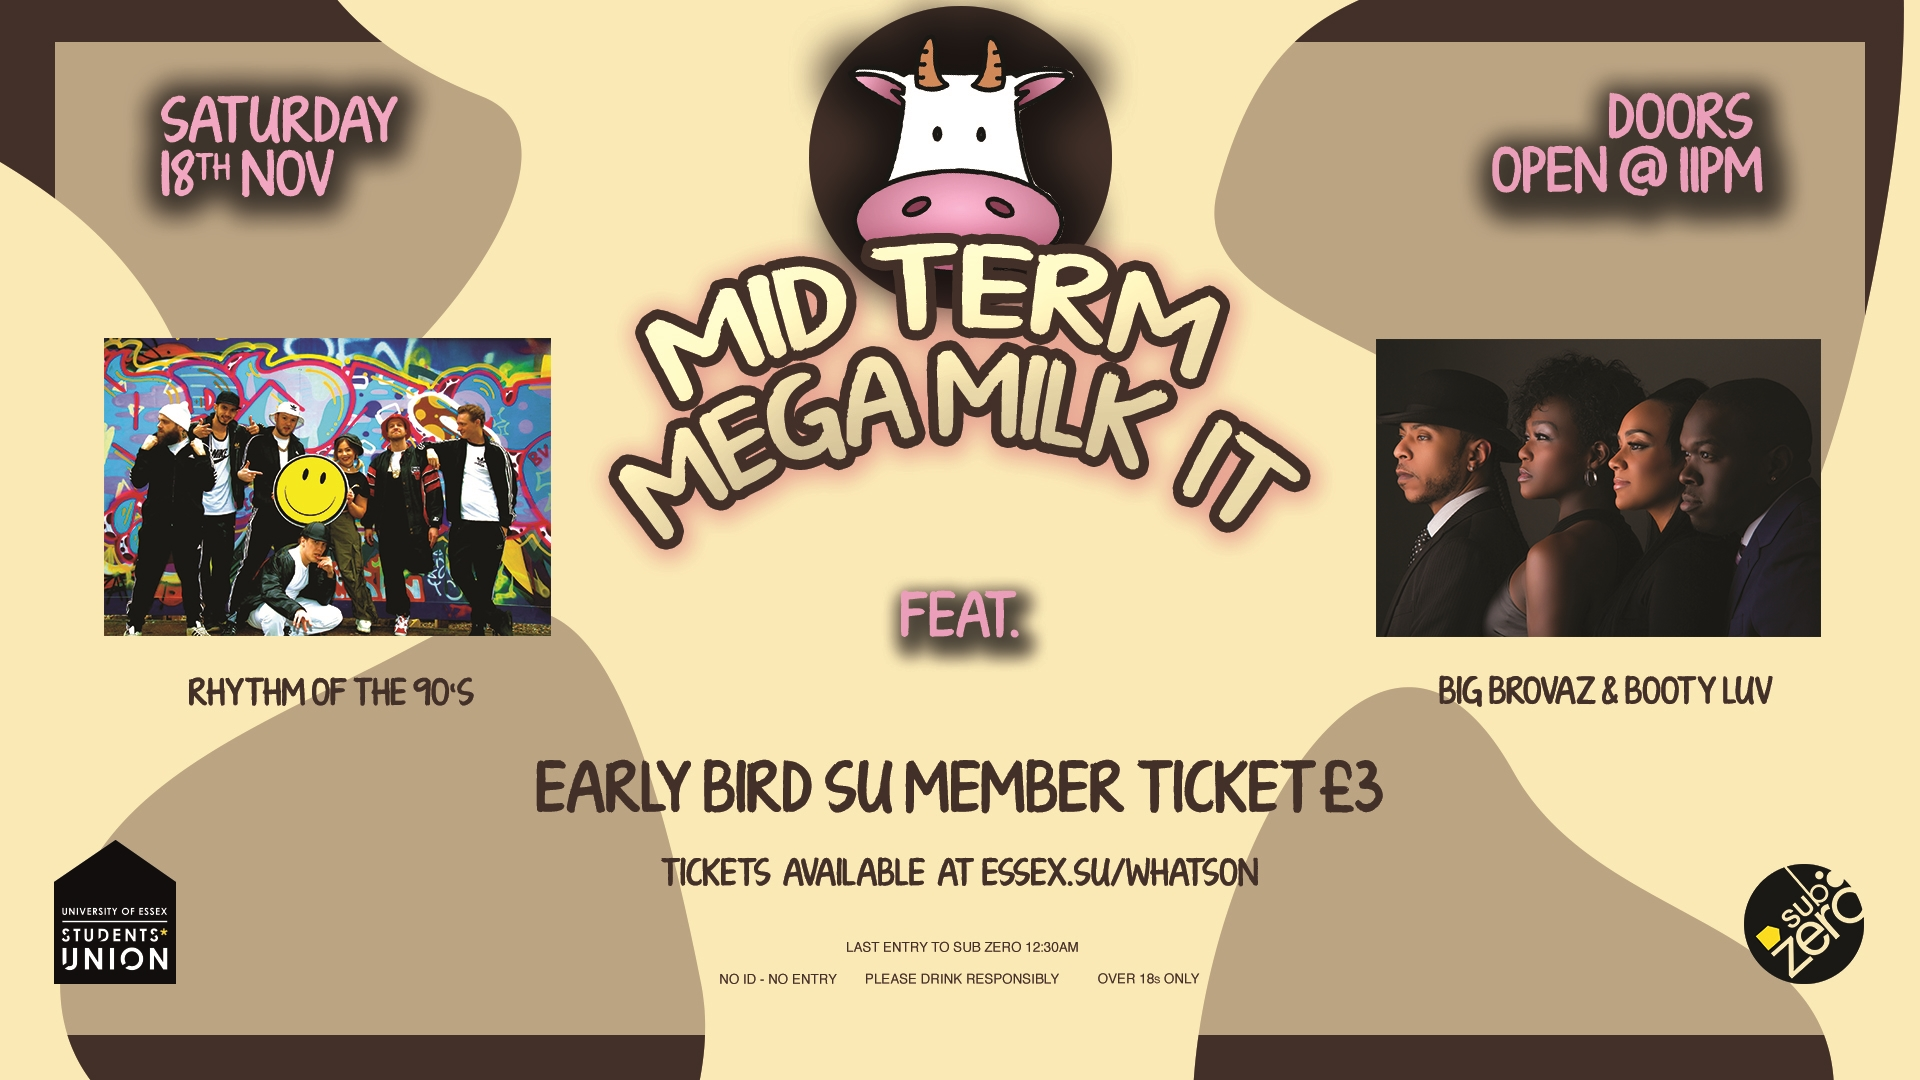 mid term mega milk it with special guests rhythm of the 90 s and